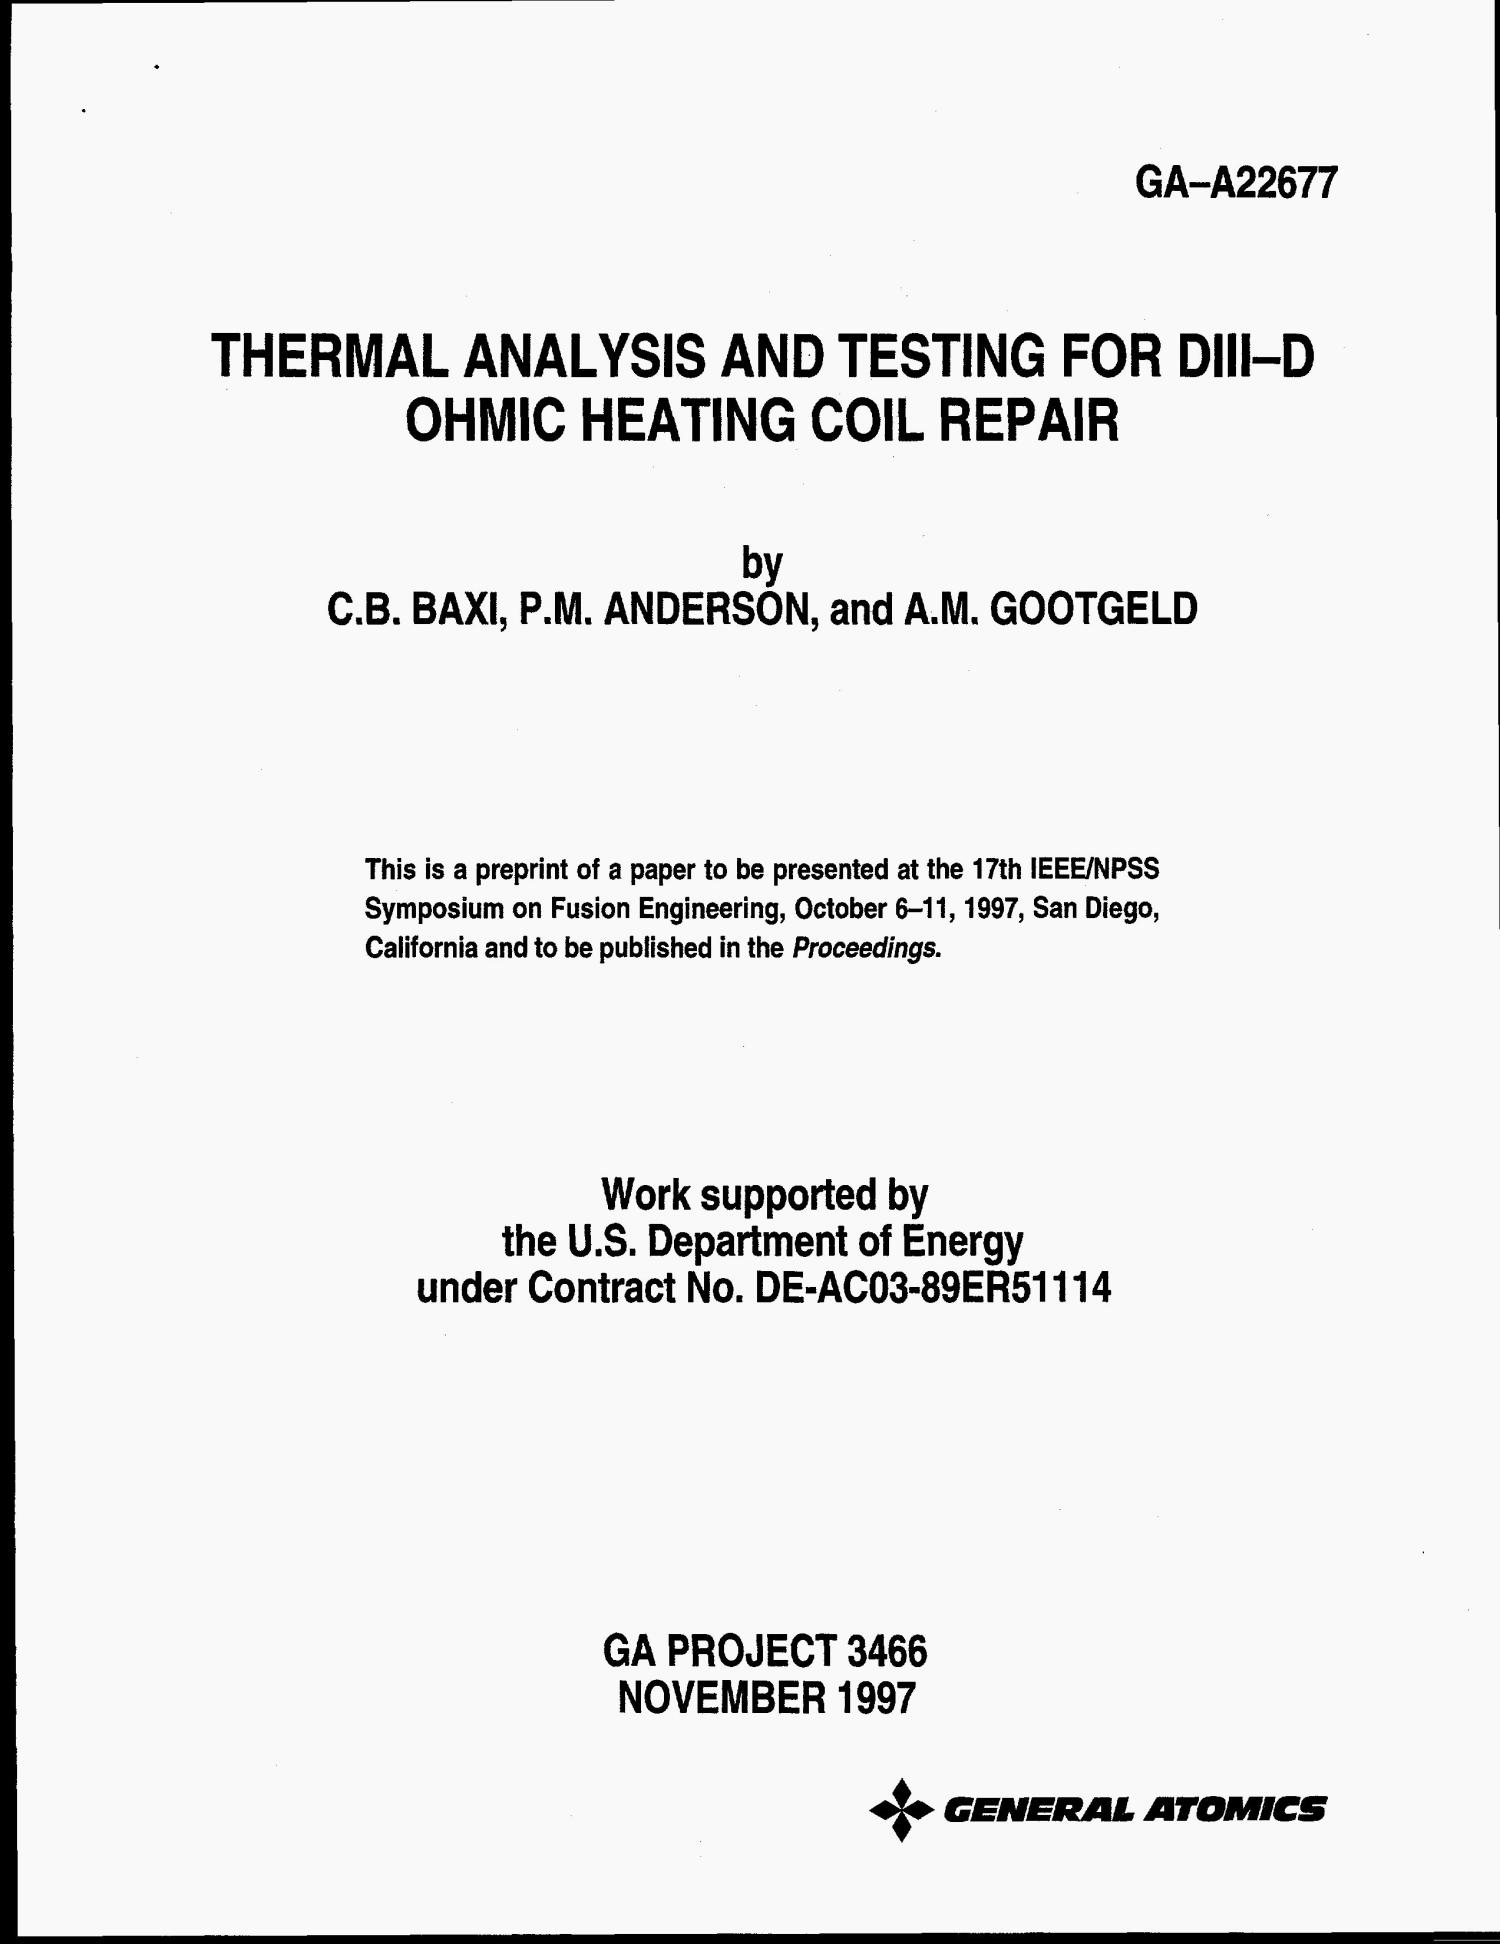 Thermal analysis and testing for DIII-D ohmic heating coil repair                                                                                                      [Sequence #]: 4 of 8